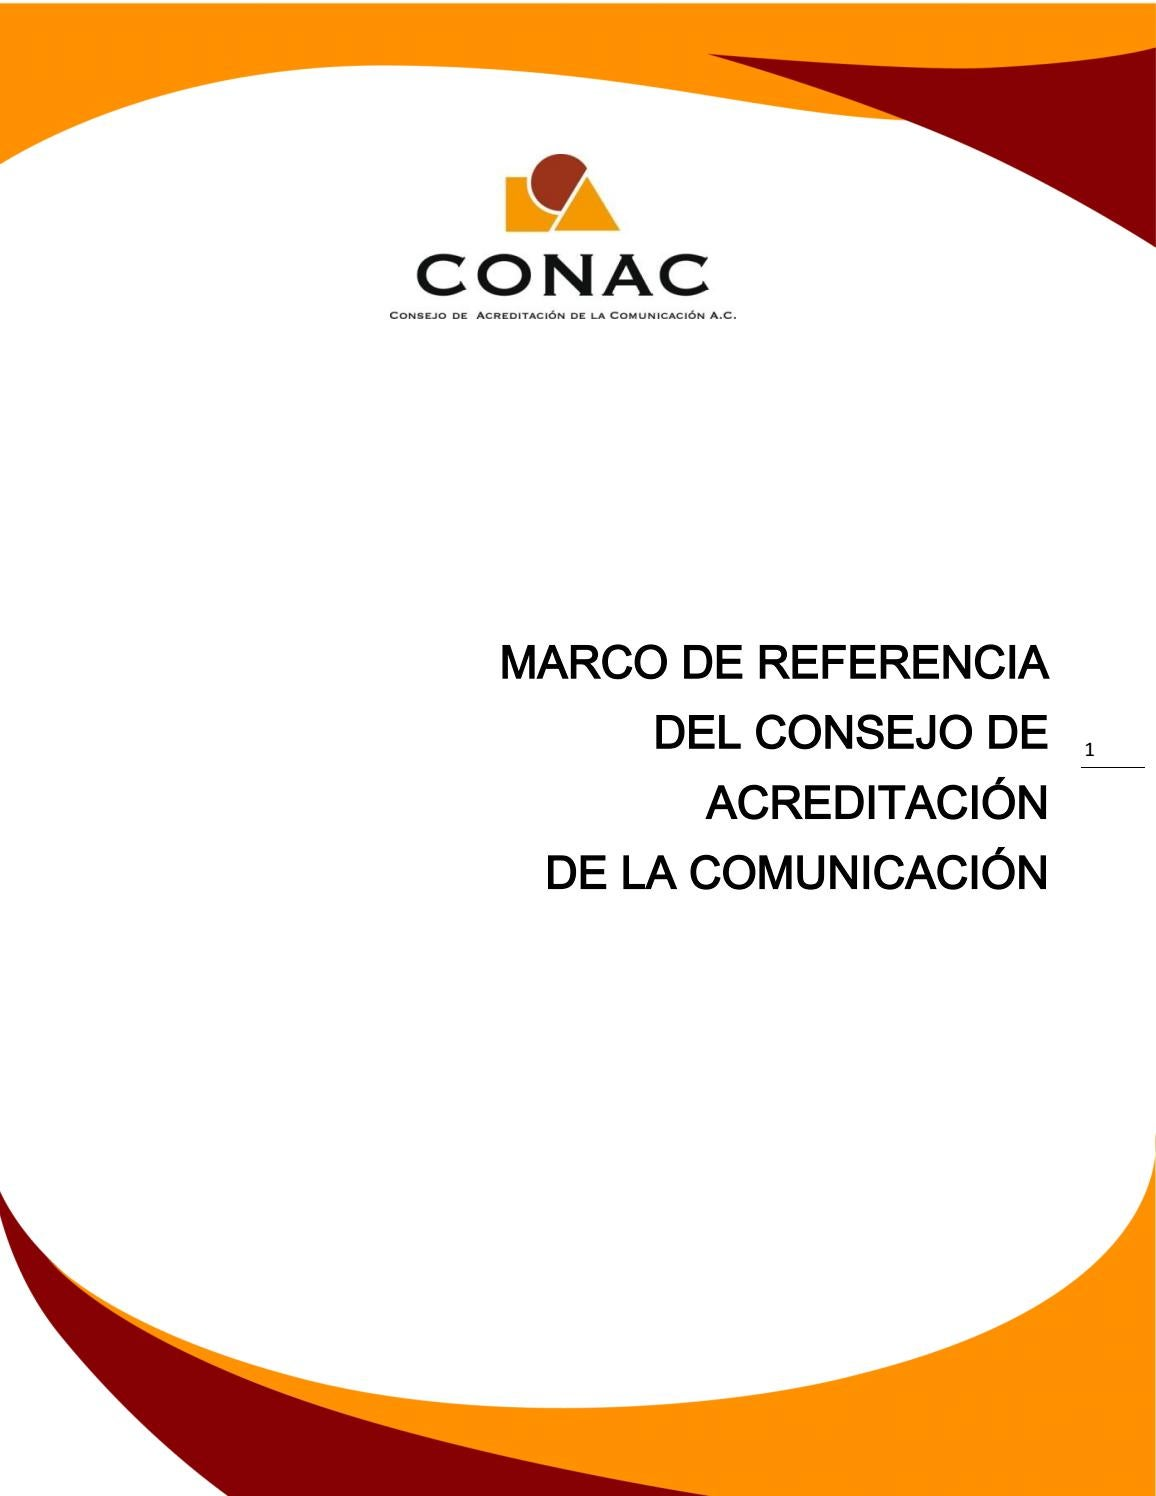 Marco de referencia conac by GACURI7 - issuu